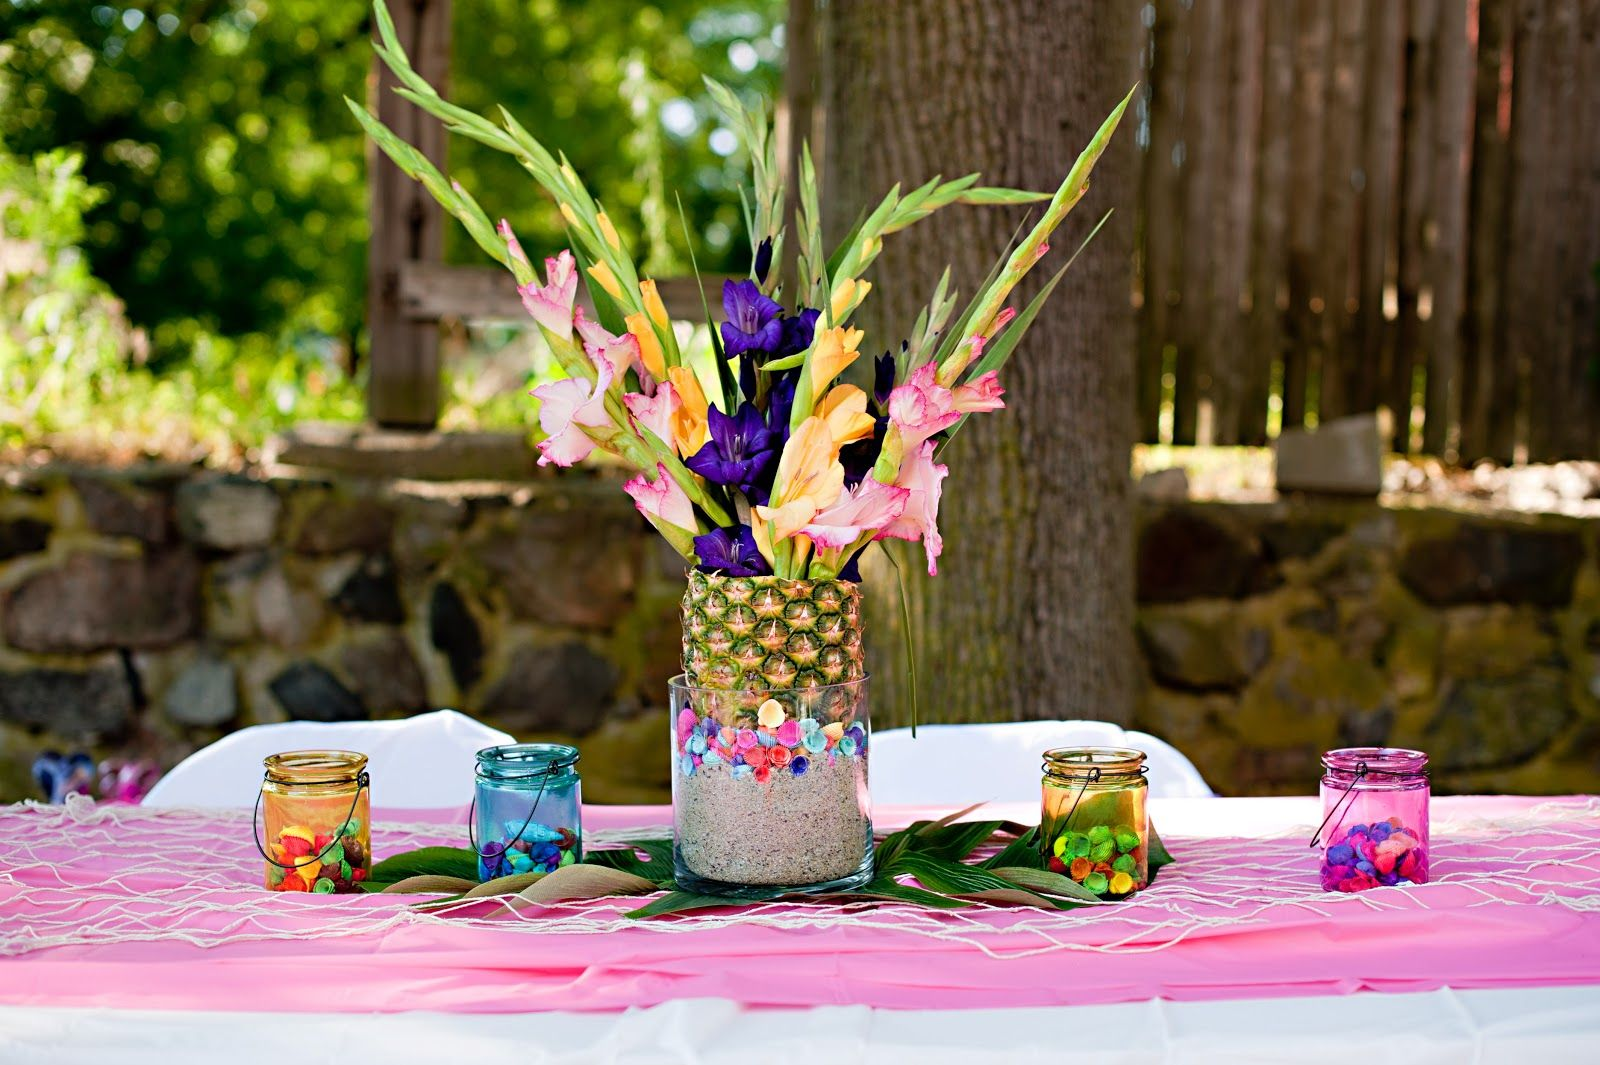 luau party table decoration ideas | The adult\'s tables had a ...